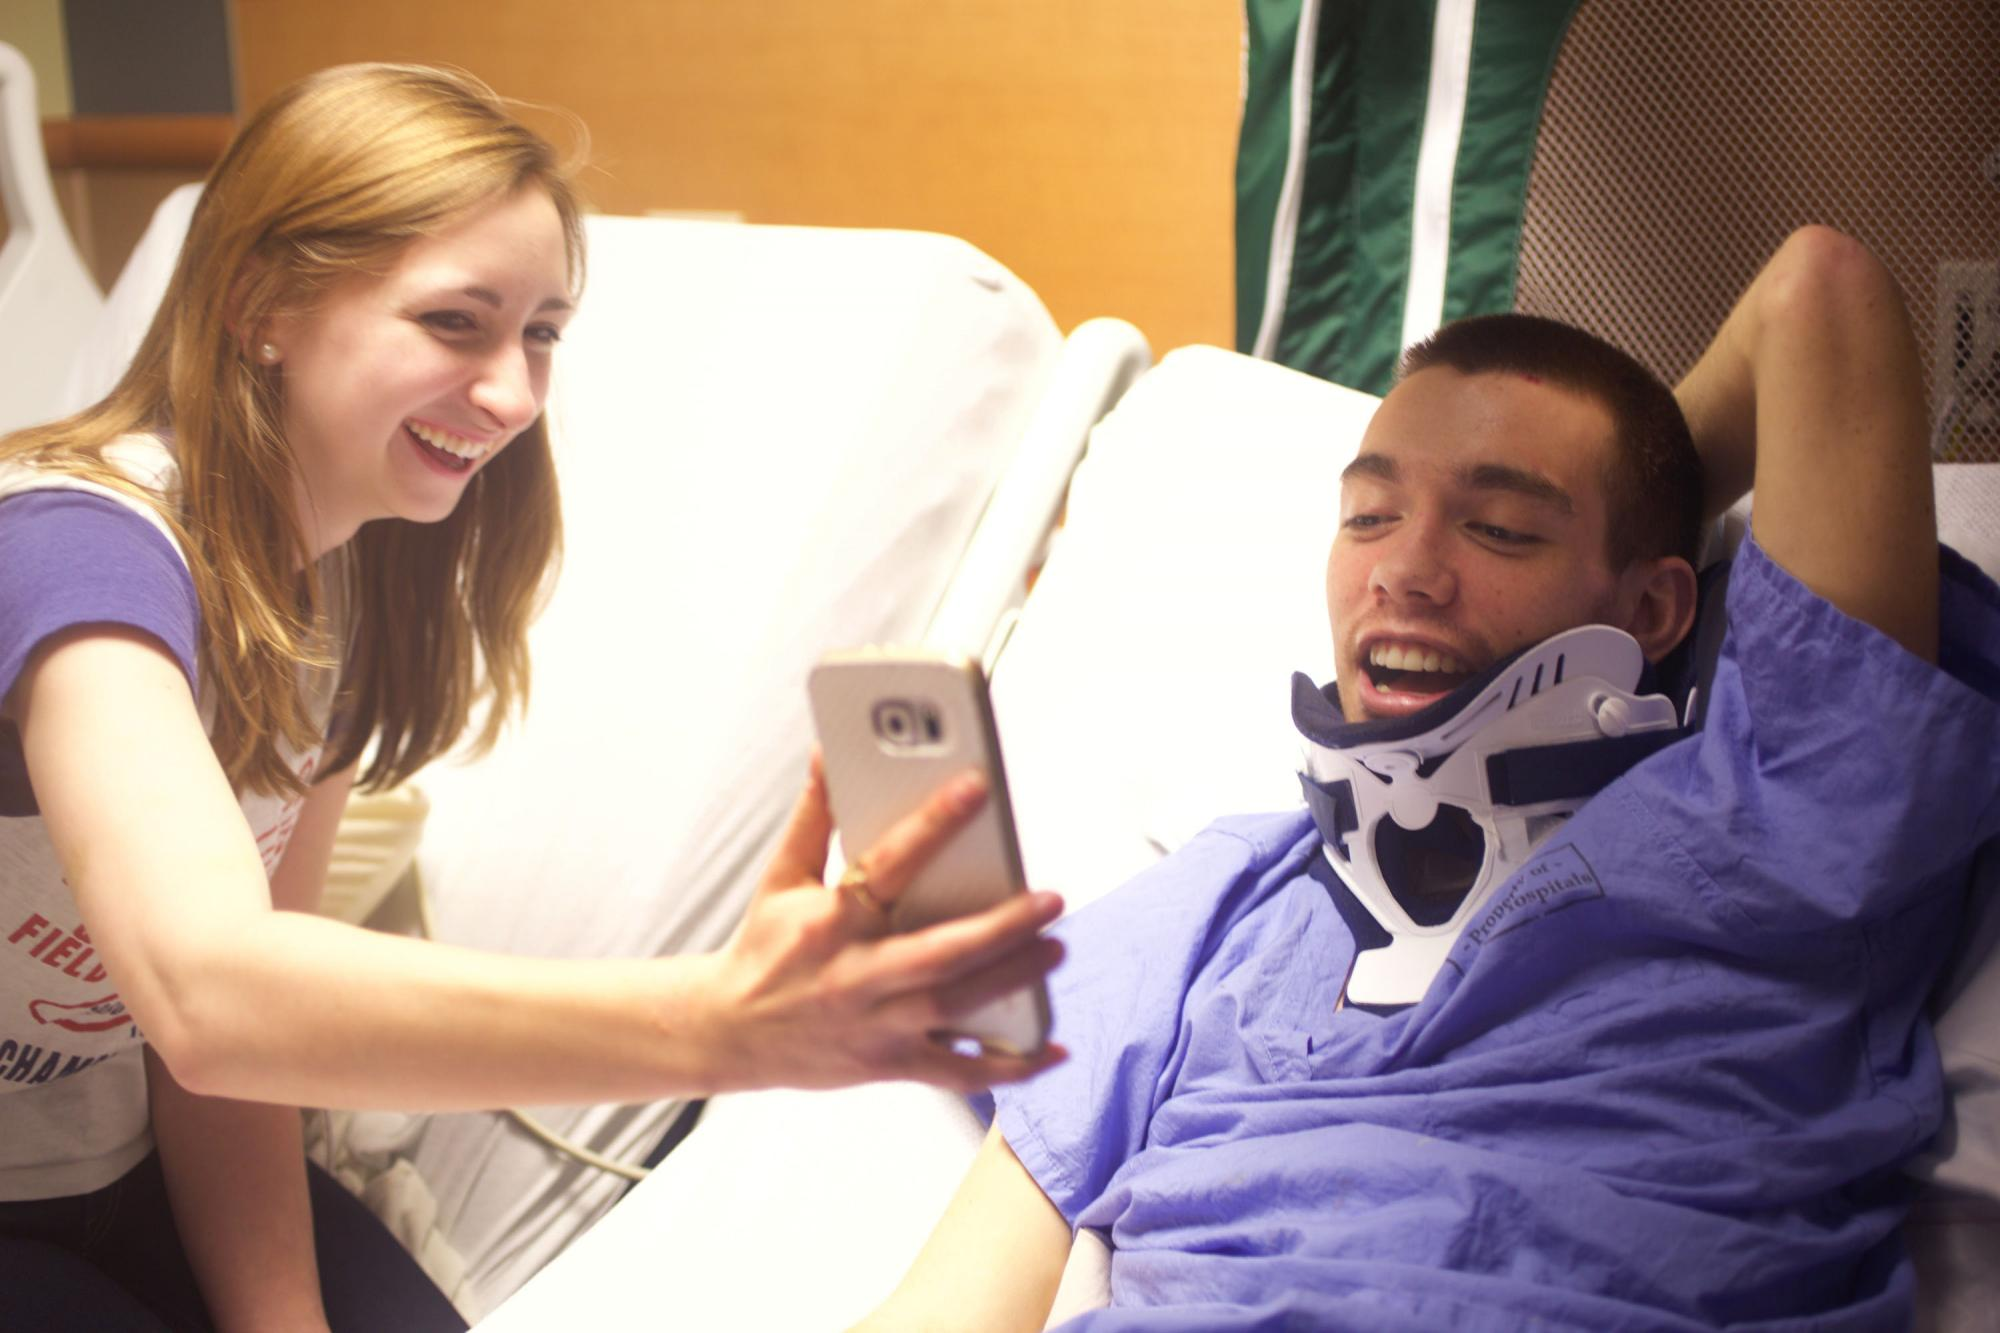 Marisa Langlois, a friend of Chris', holds the phone so Chris can video chat with his family on Mar 3, 2016. Chris's mother, Sarah Clemens, set up a video chat with her family so that they could see and talk to Chris every evening.  Photography by Dominique Hessert.